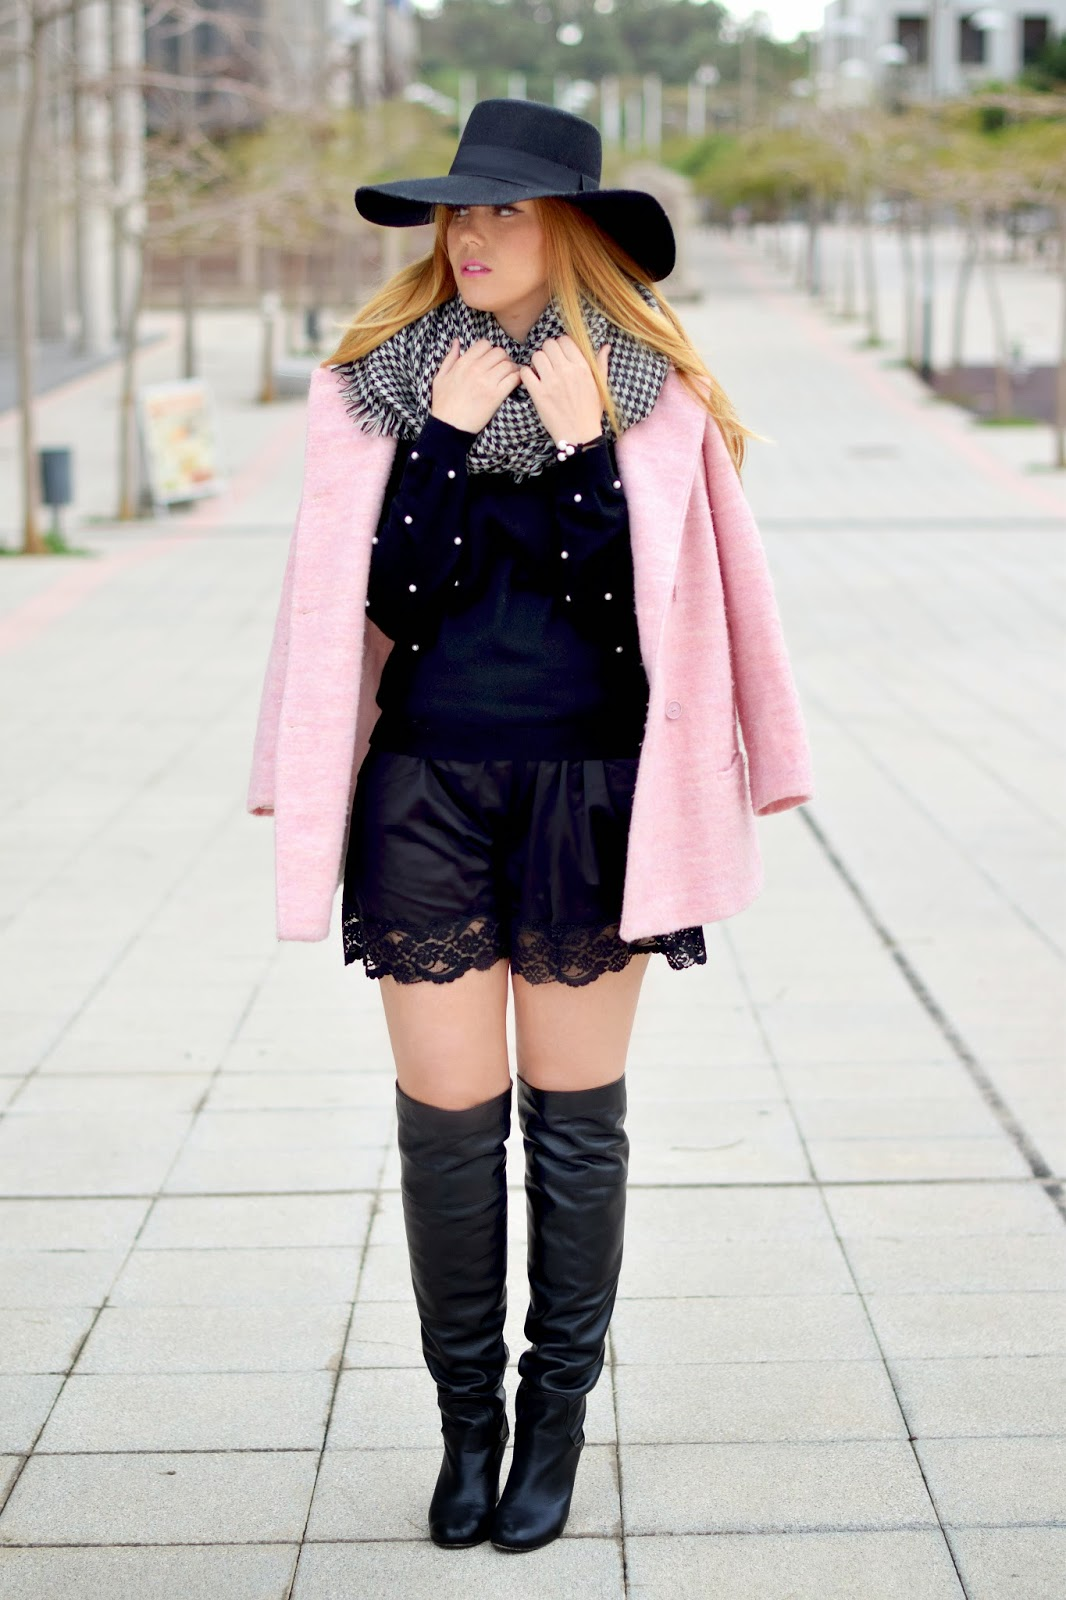 nery hdez, poppy lux, bisuteria la ola, candy coat, hat, pearls, lace shorts,